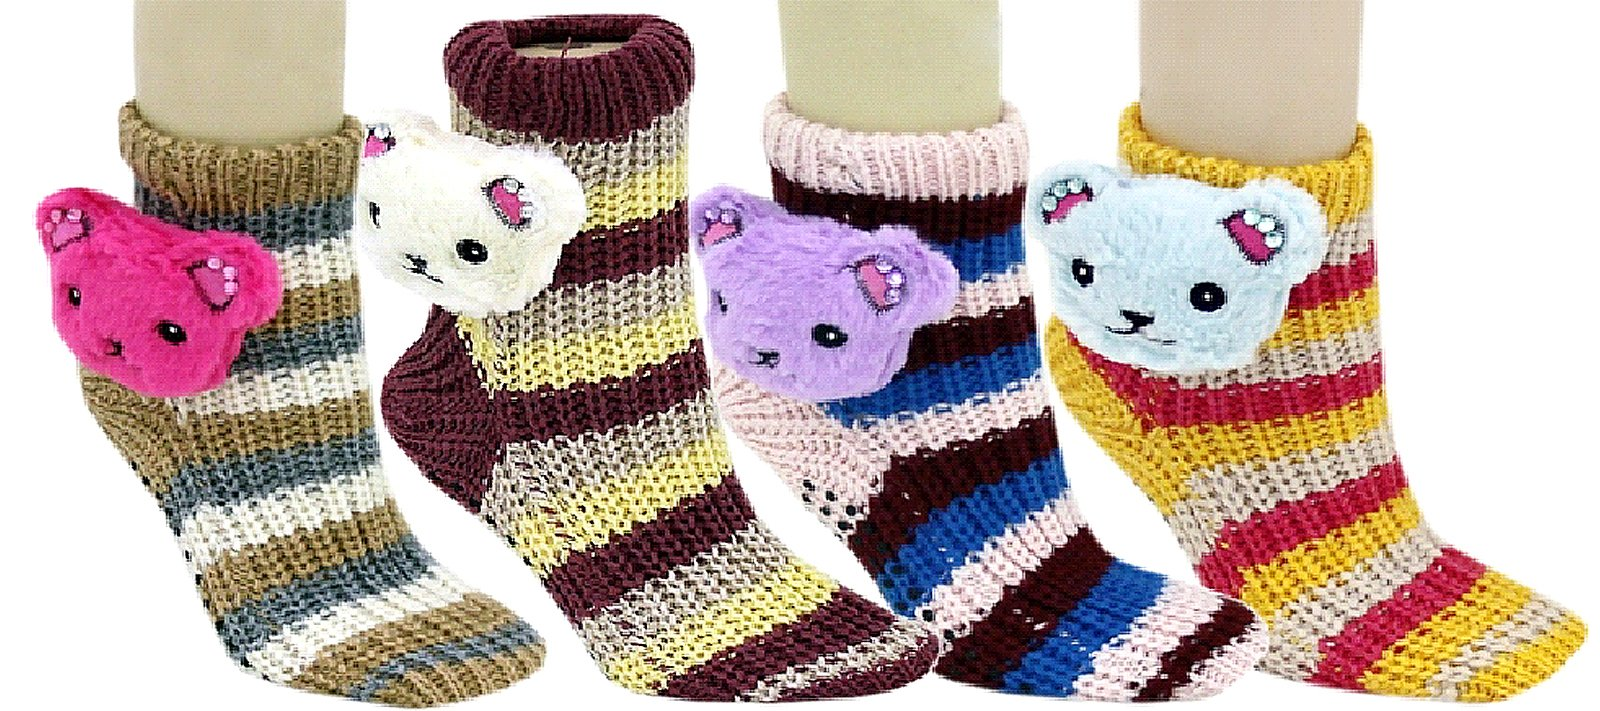 Fashion Mic's 3D Slipper Socks With Rubber Grips 6 Pairs (9-11, teddy bear)